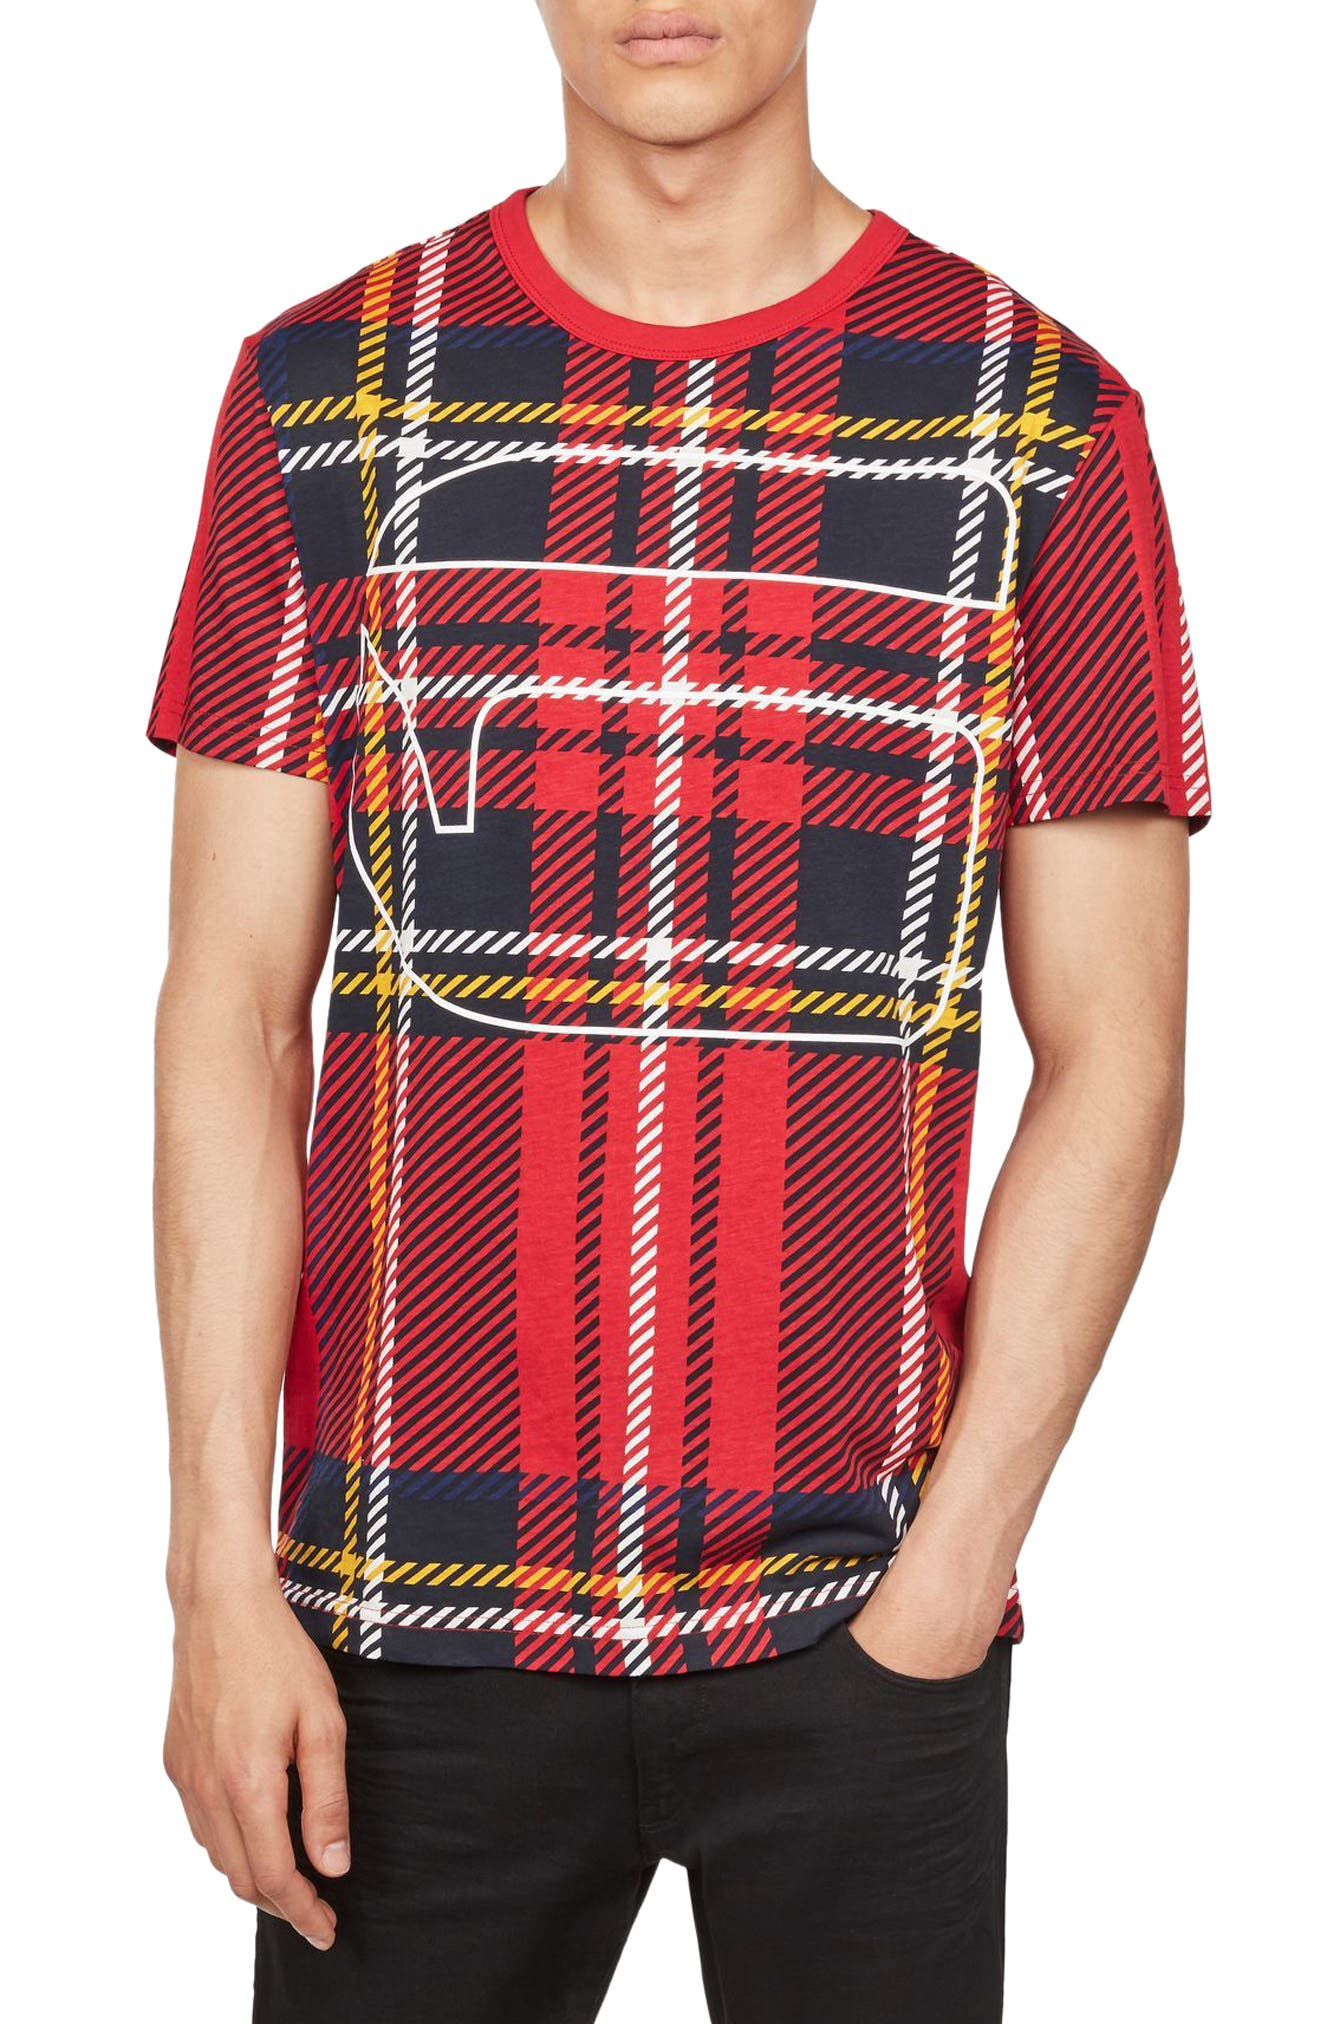 G-Star Raw Royal Tartan Graphic T-Shirt